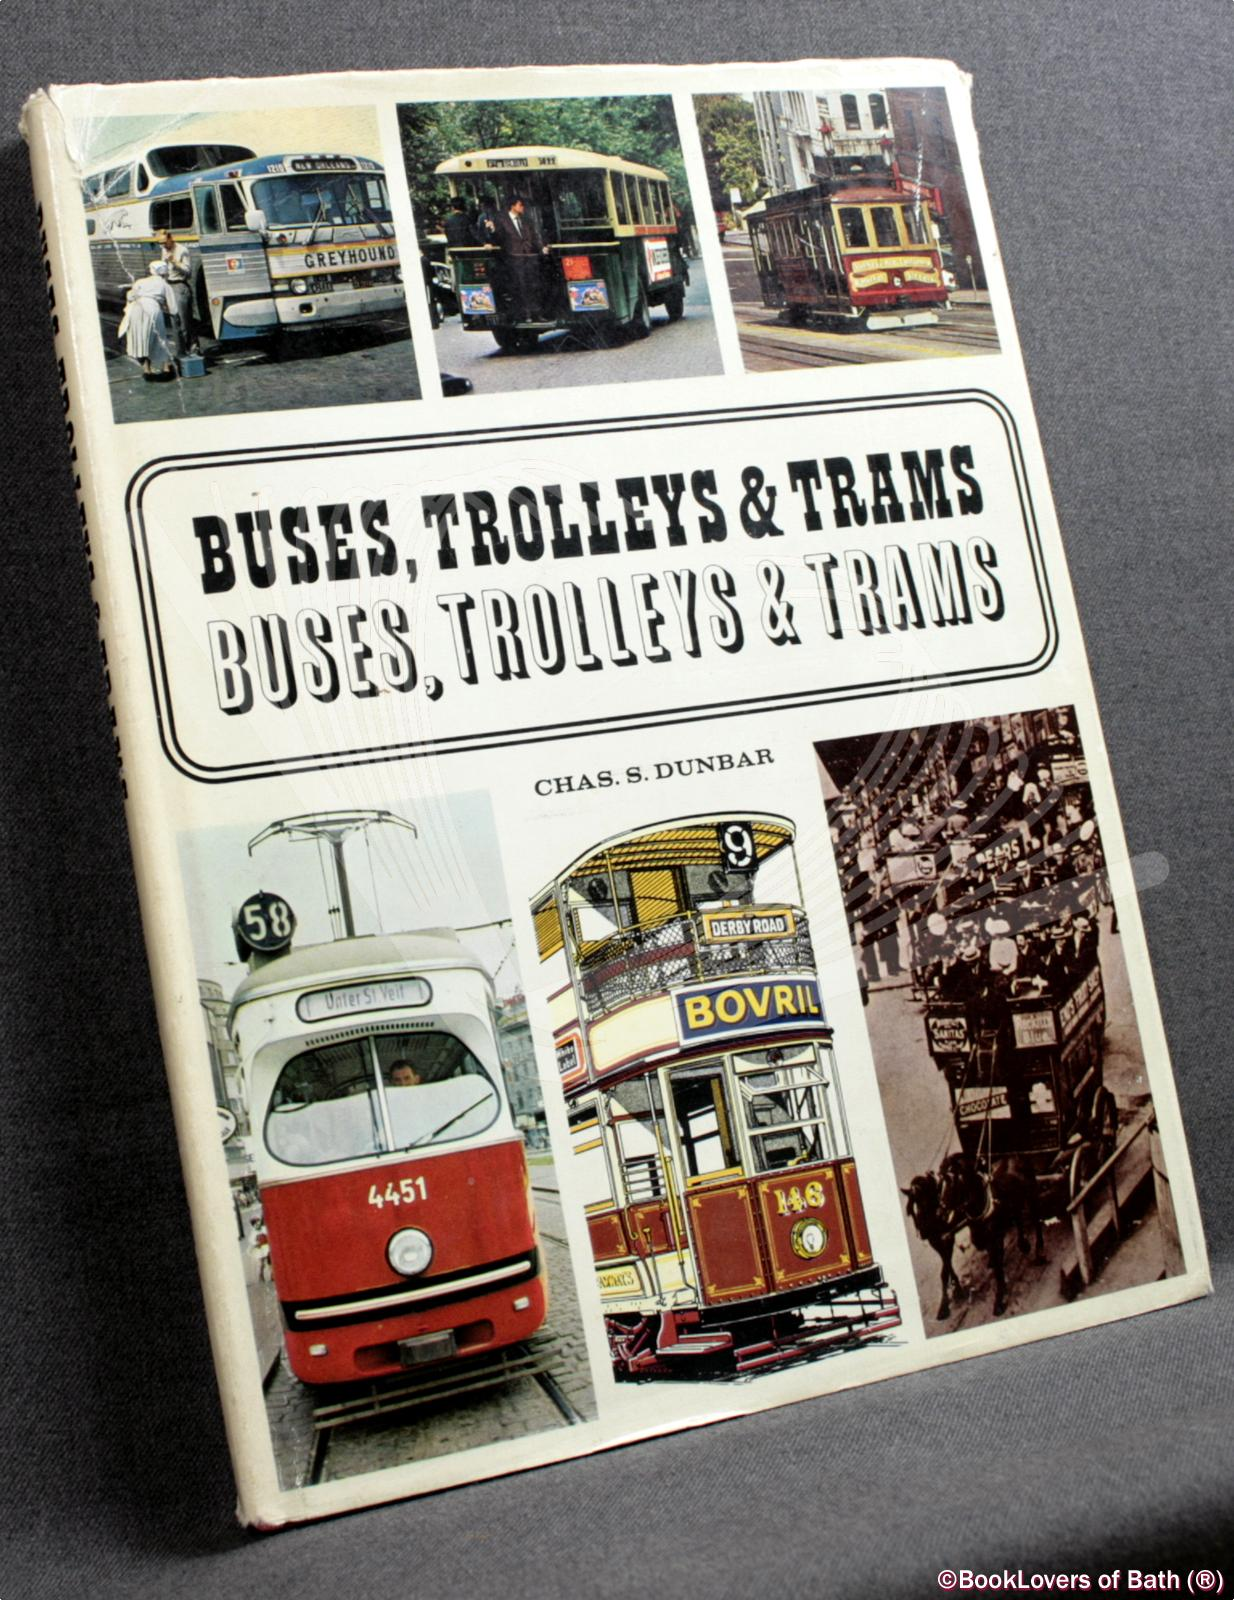 Buses, Trolleys and Trams - Chas S. Dunbar